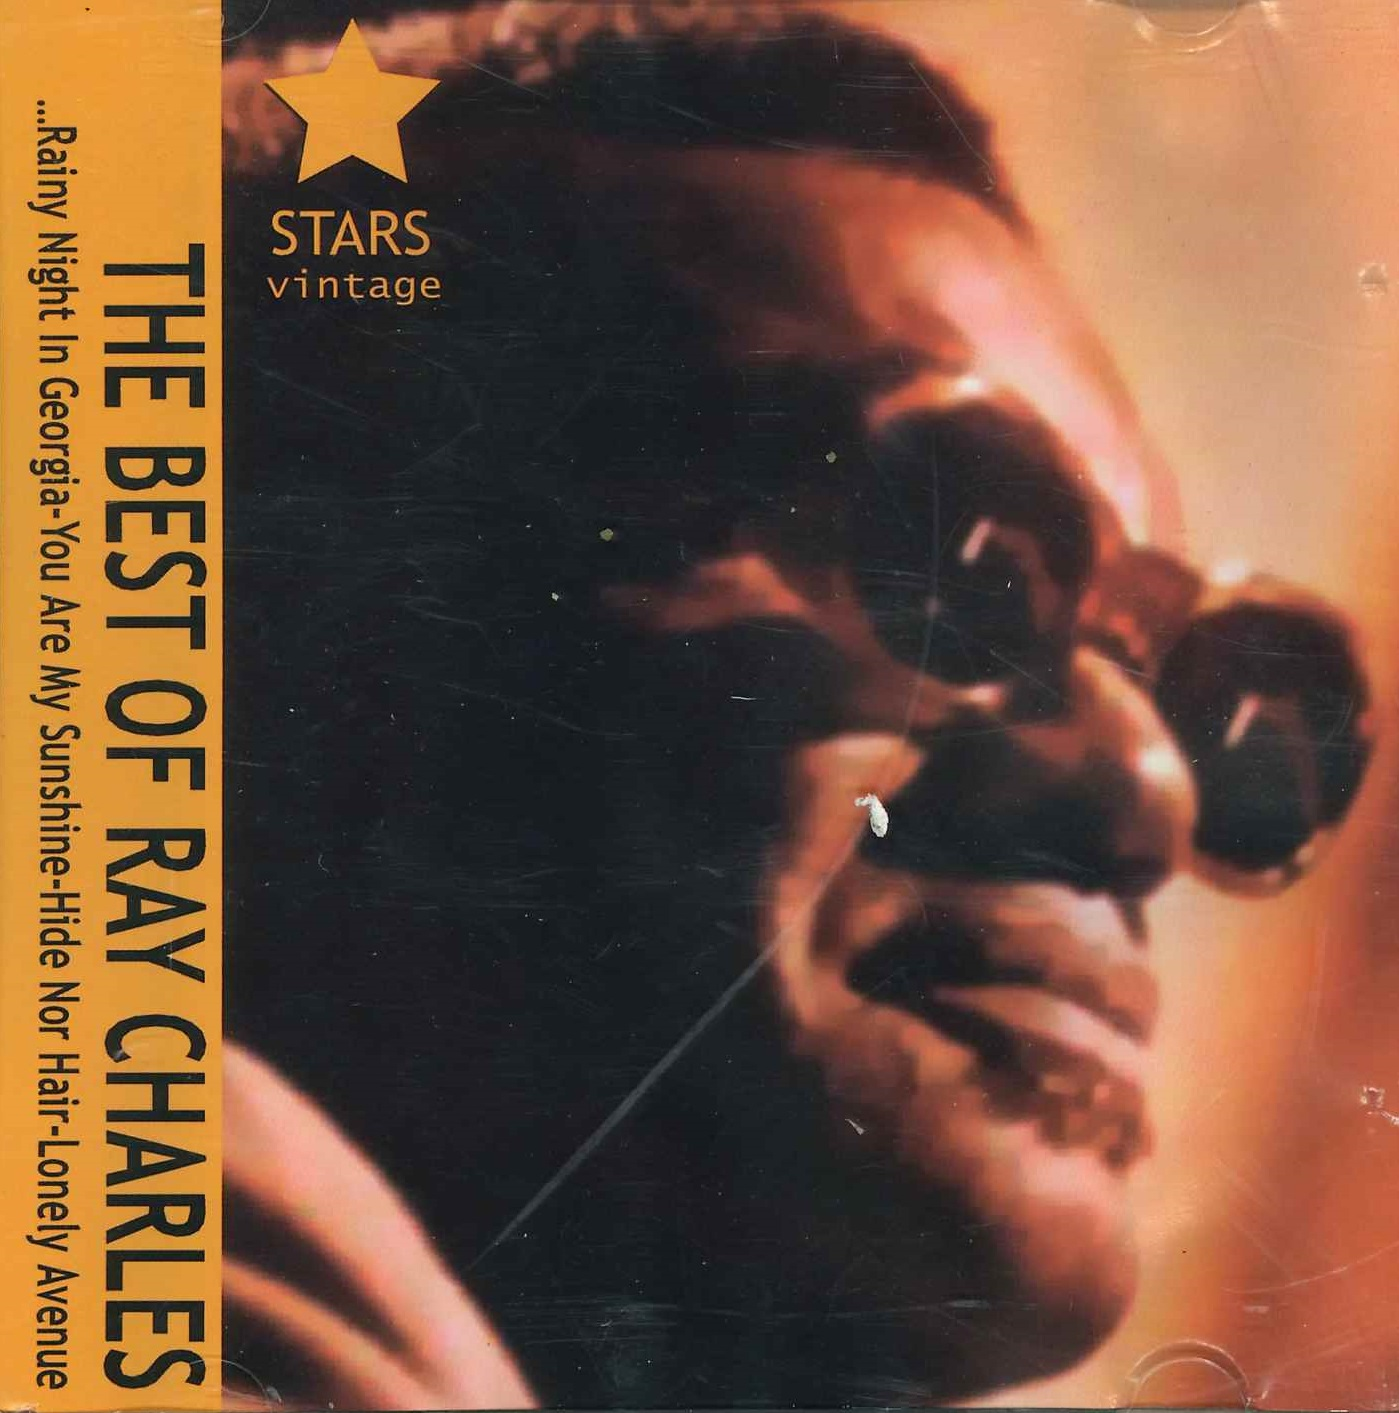 /BiblioNET/Upload/Capas/The best of Ray Charles.jpg